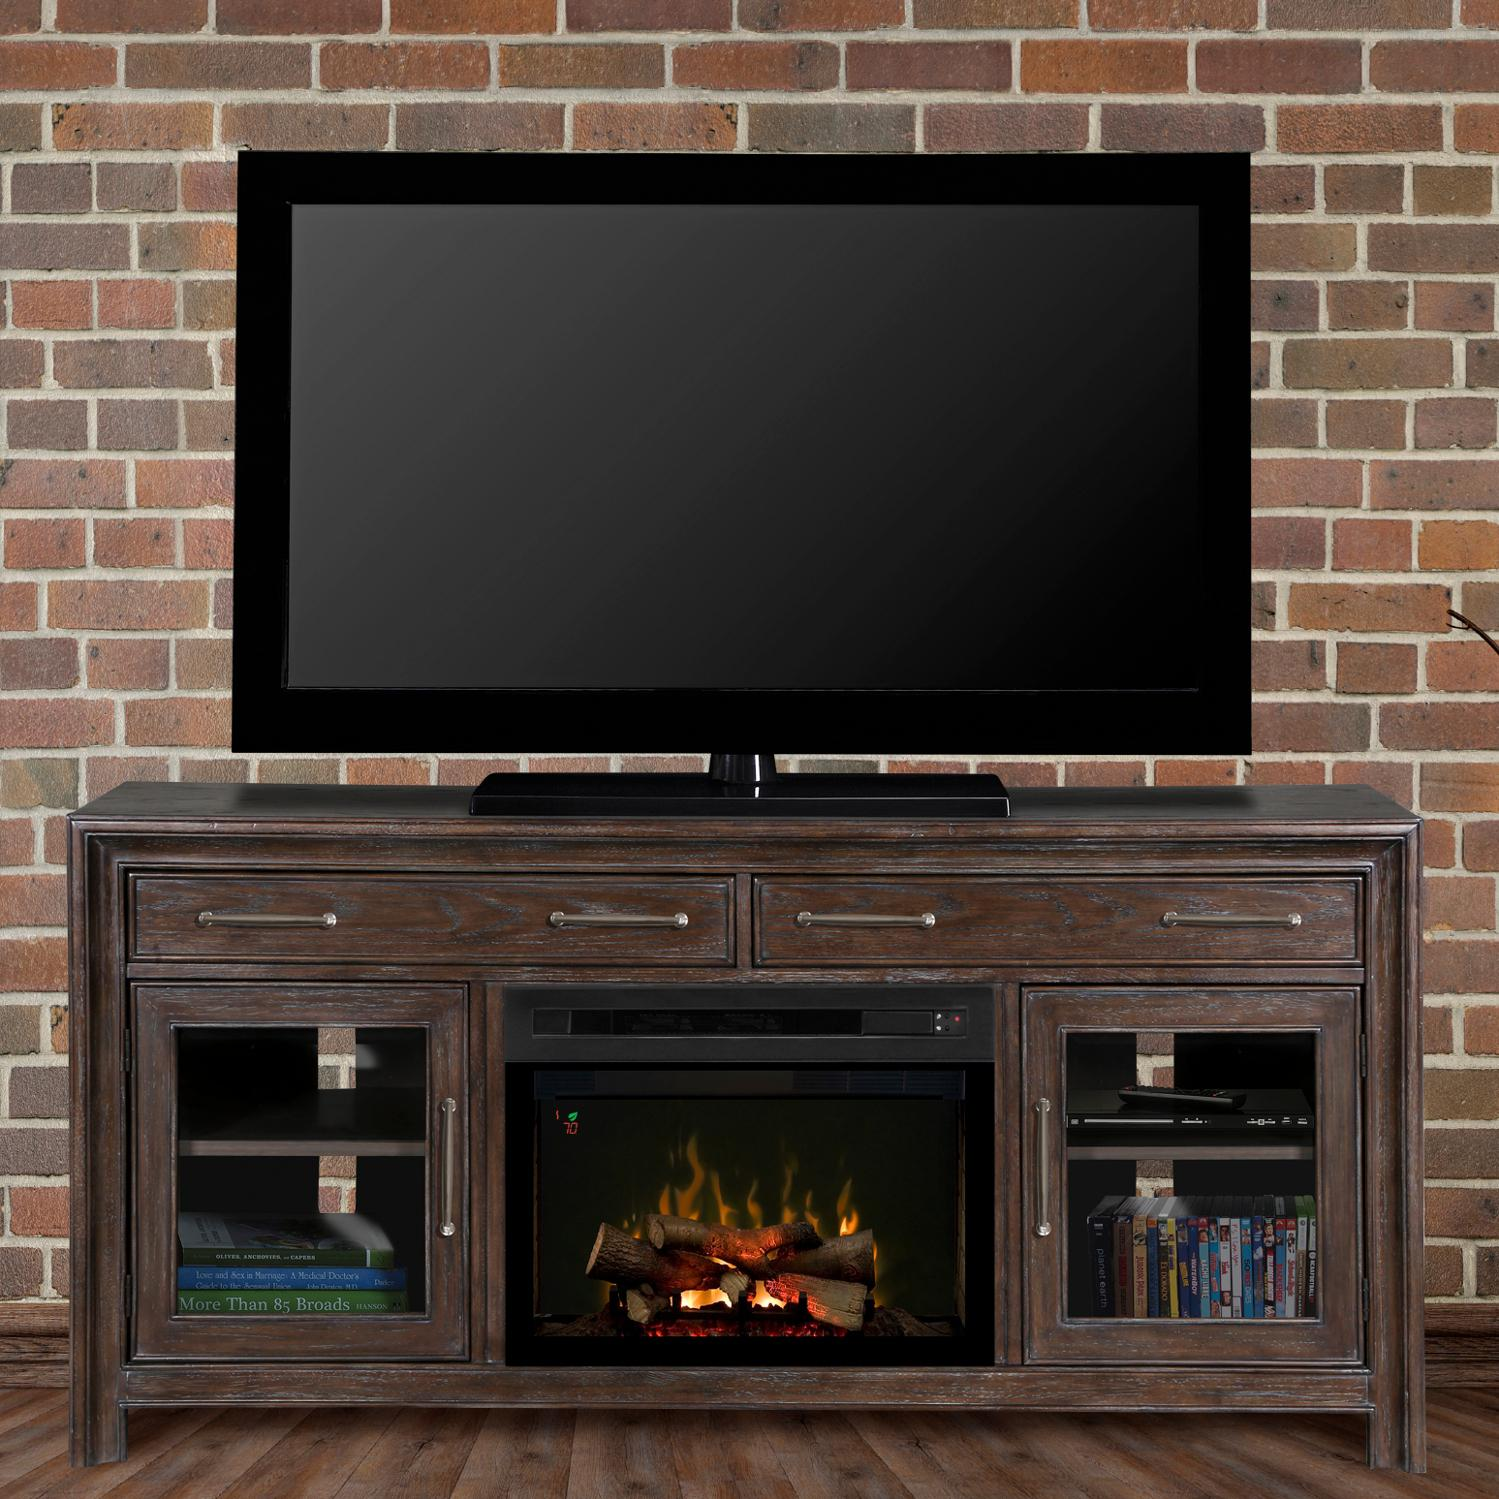 Dimplex Woolbrook 68-inch Electric Fireplace Media Console - Nutmeg - Gds25l-1415wbn